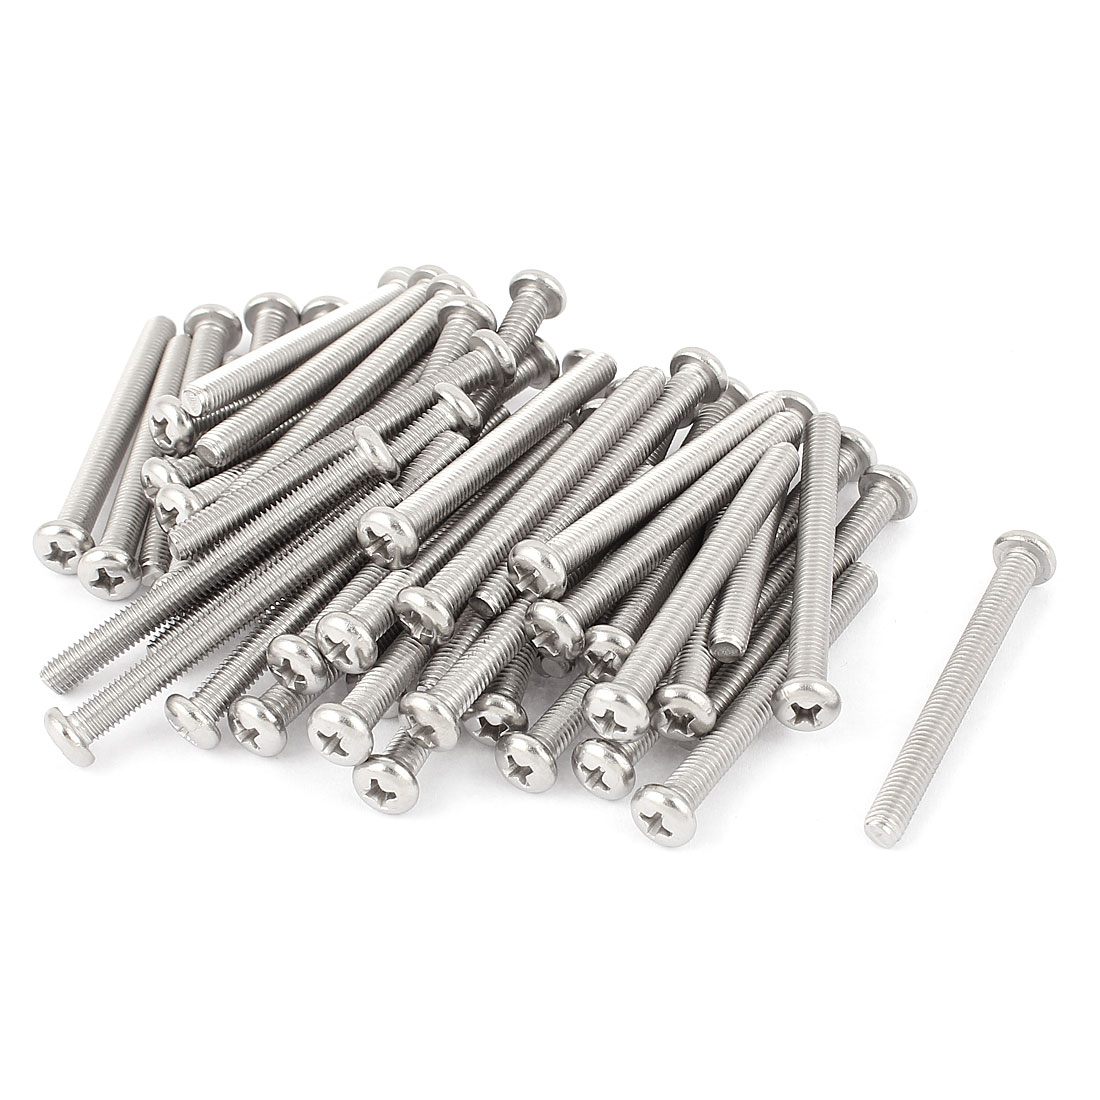 M5 x 50mm 304 Stainless Steel Crosshead Phillips Round Head Screws Bolt 60pcs